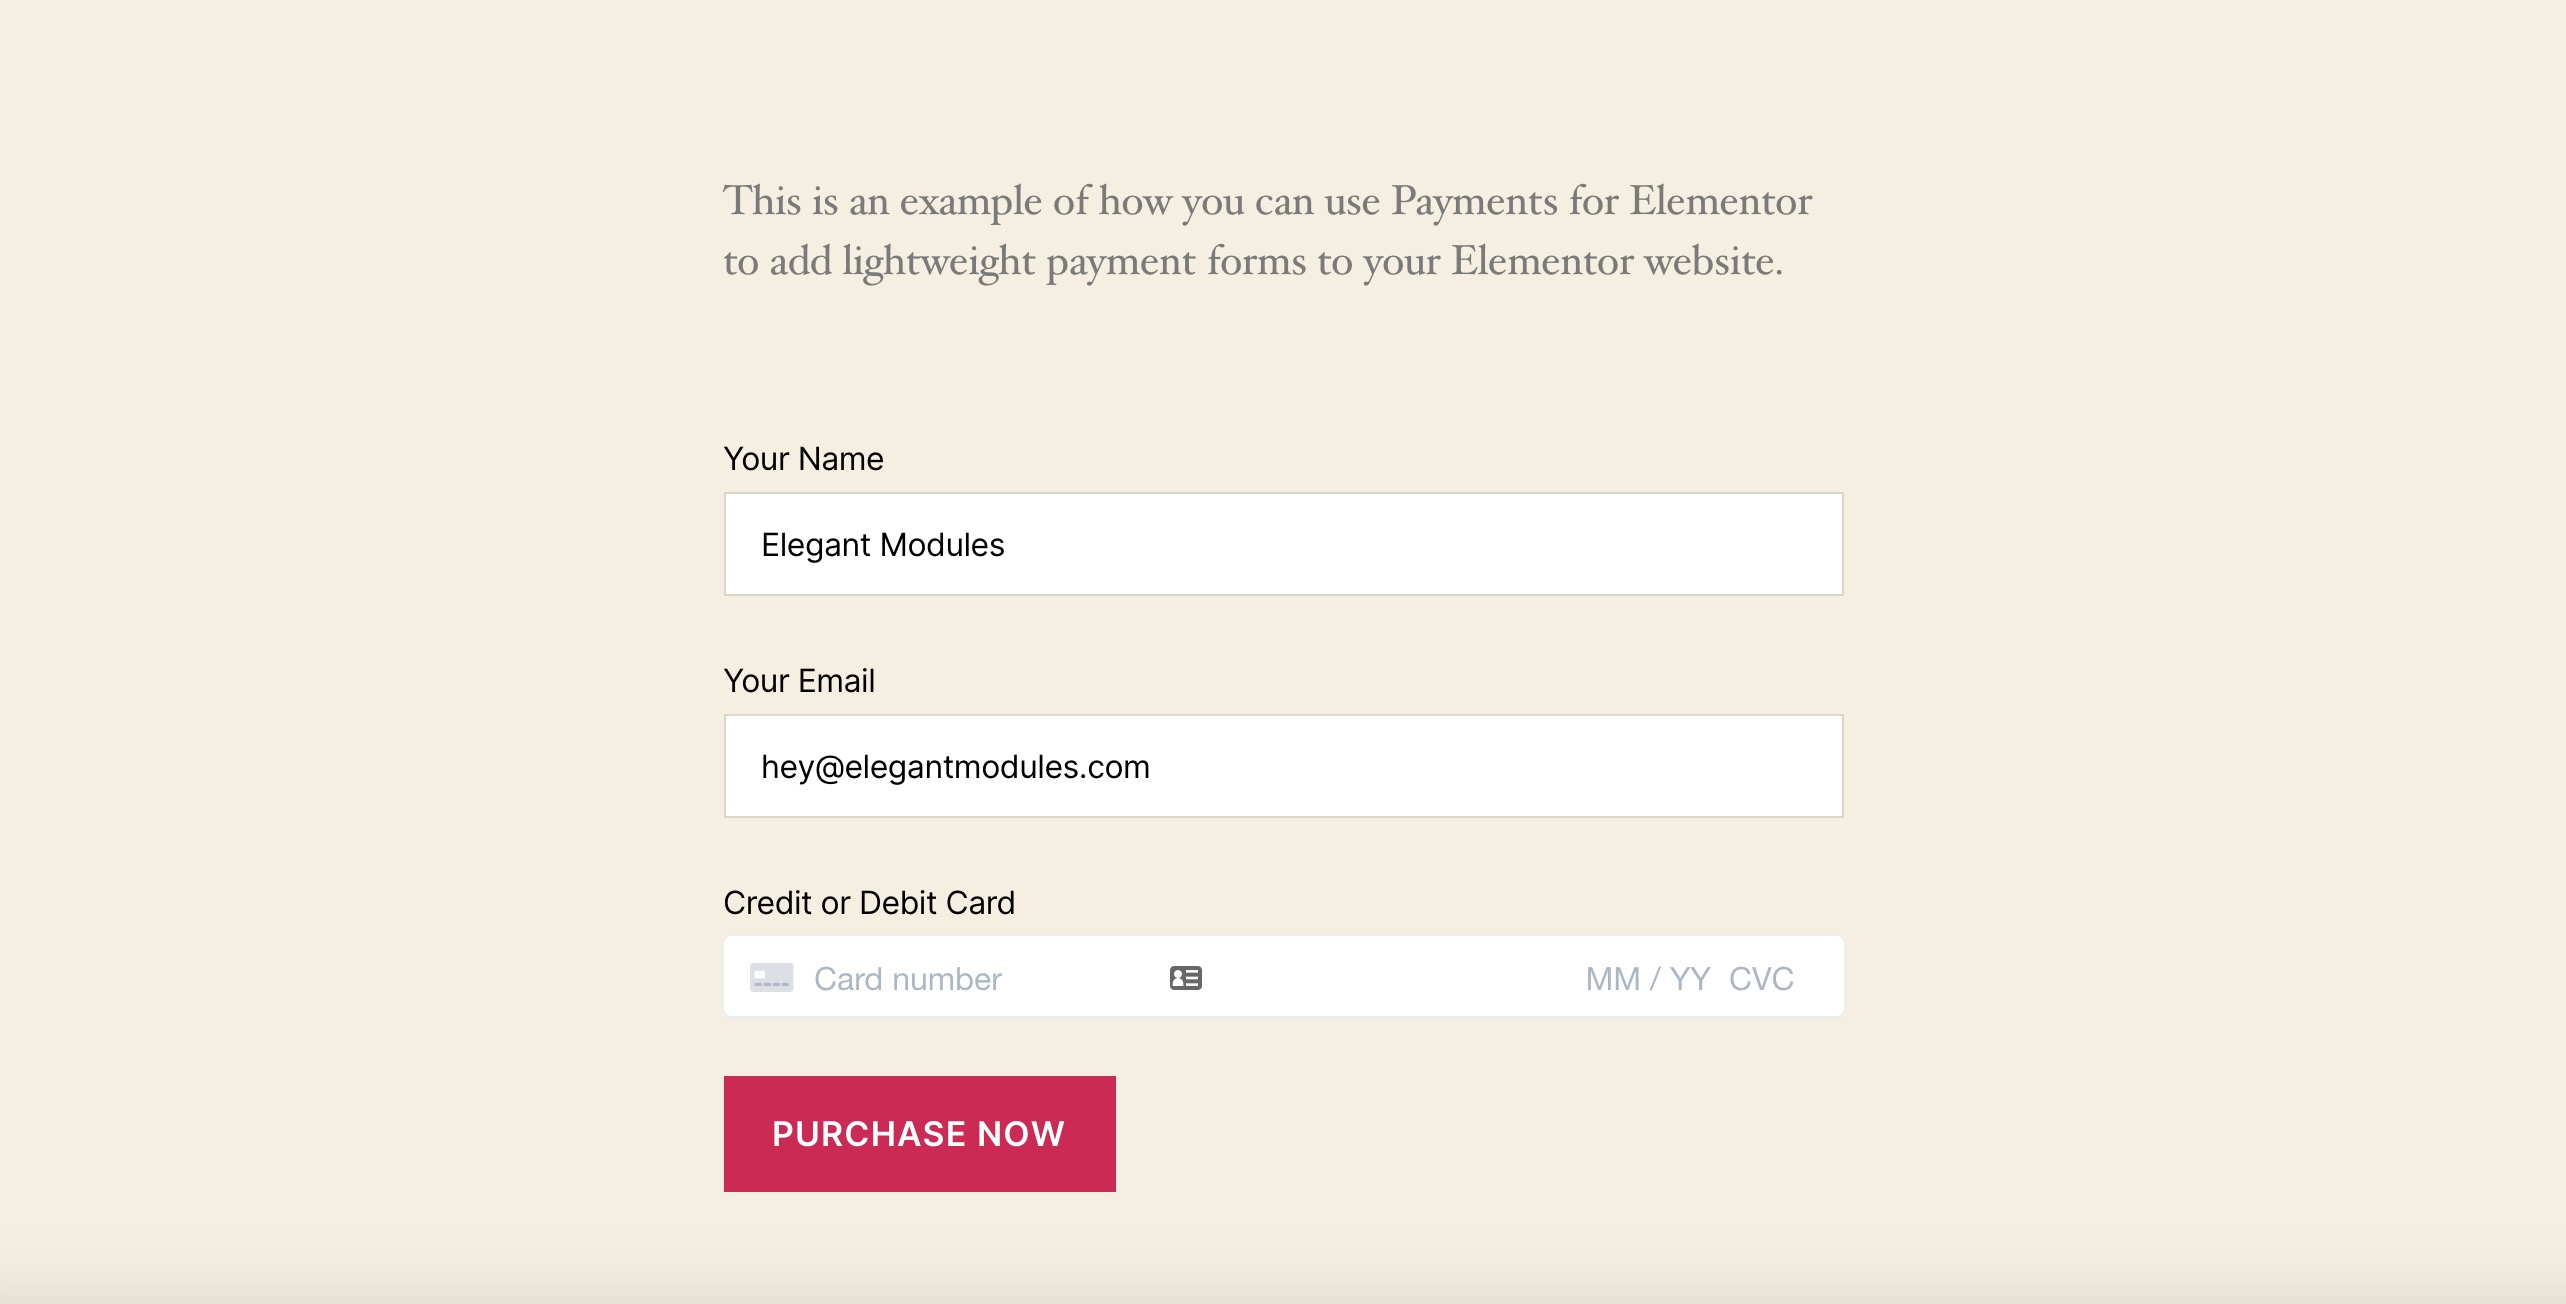 Payments for Elementor